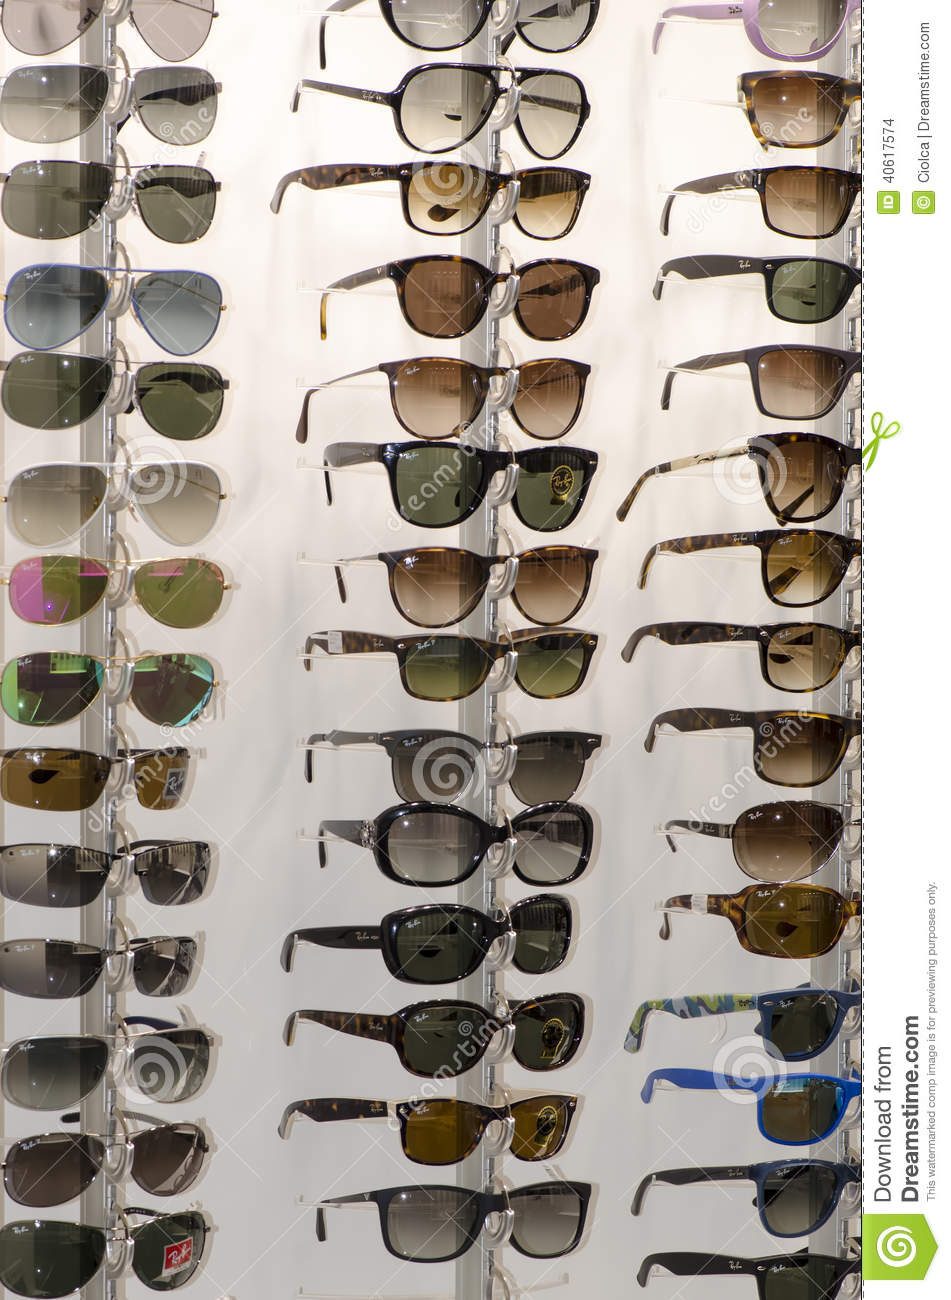 Rack of sunglasses editorial stock image. Image of group